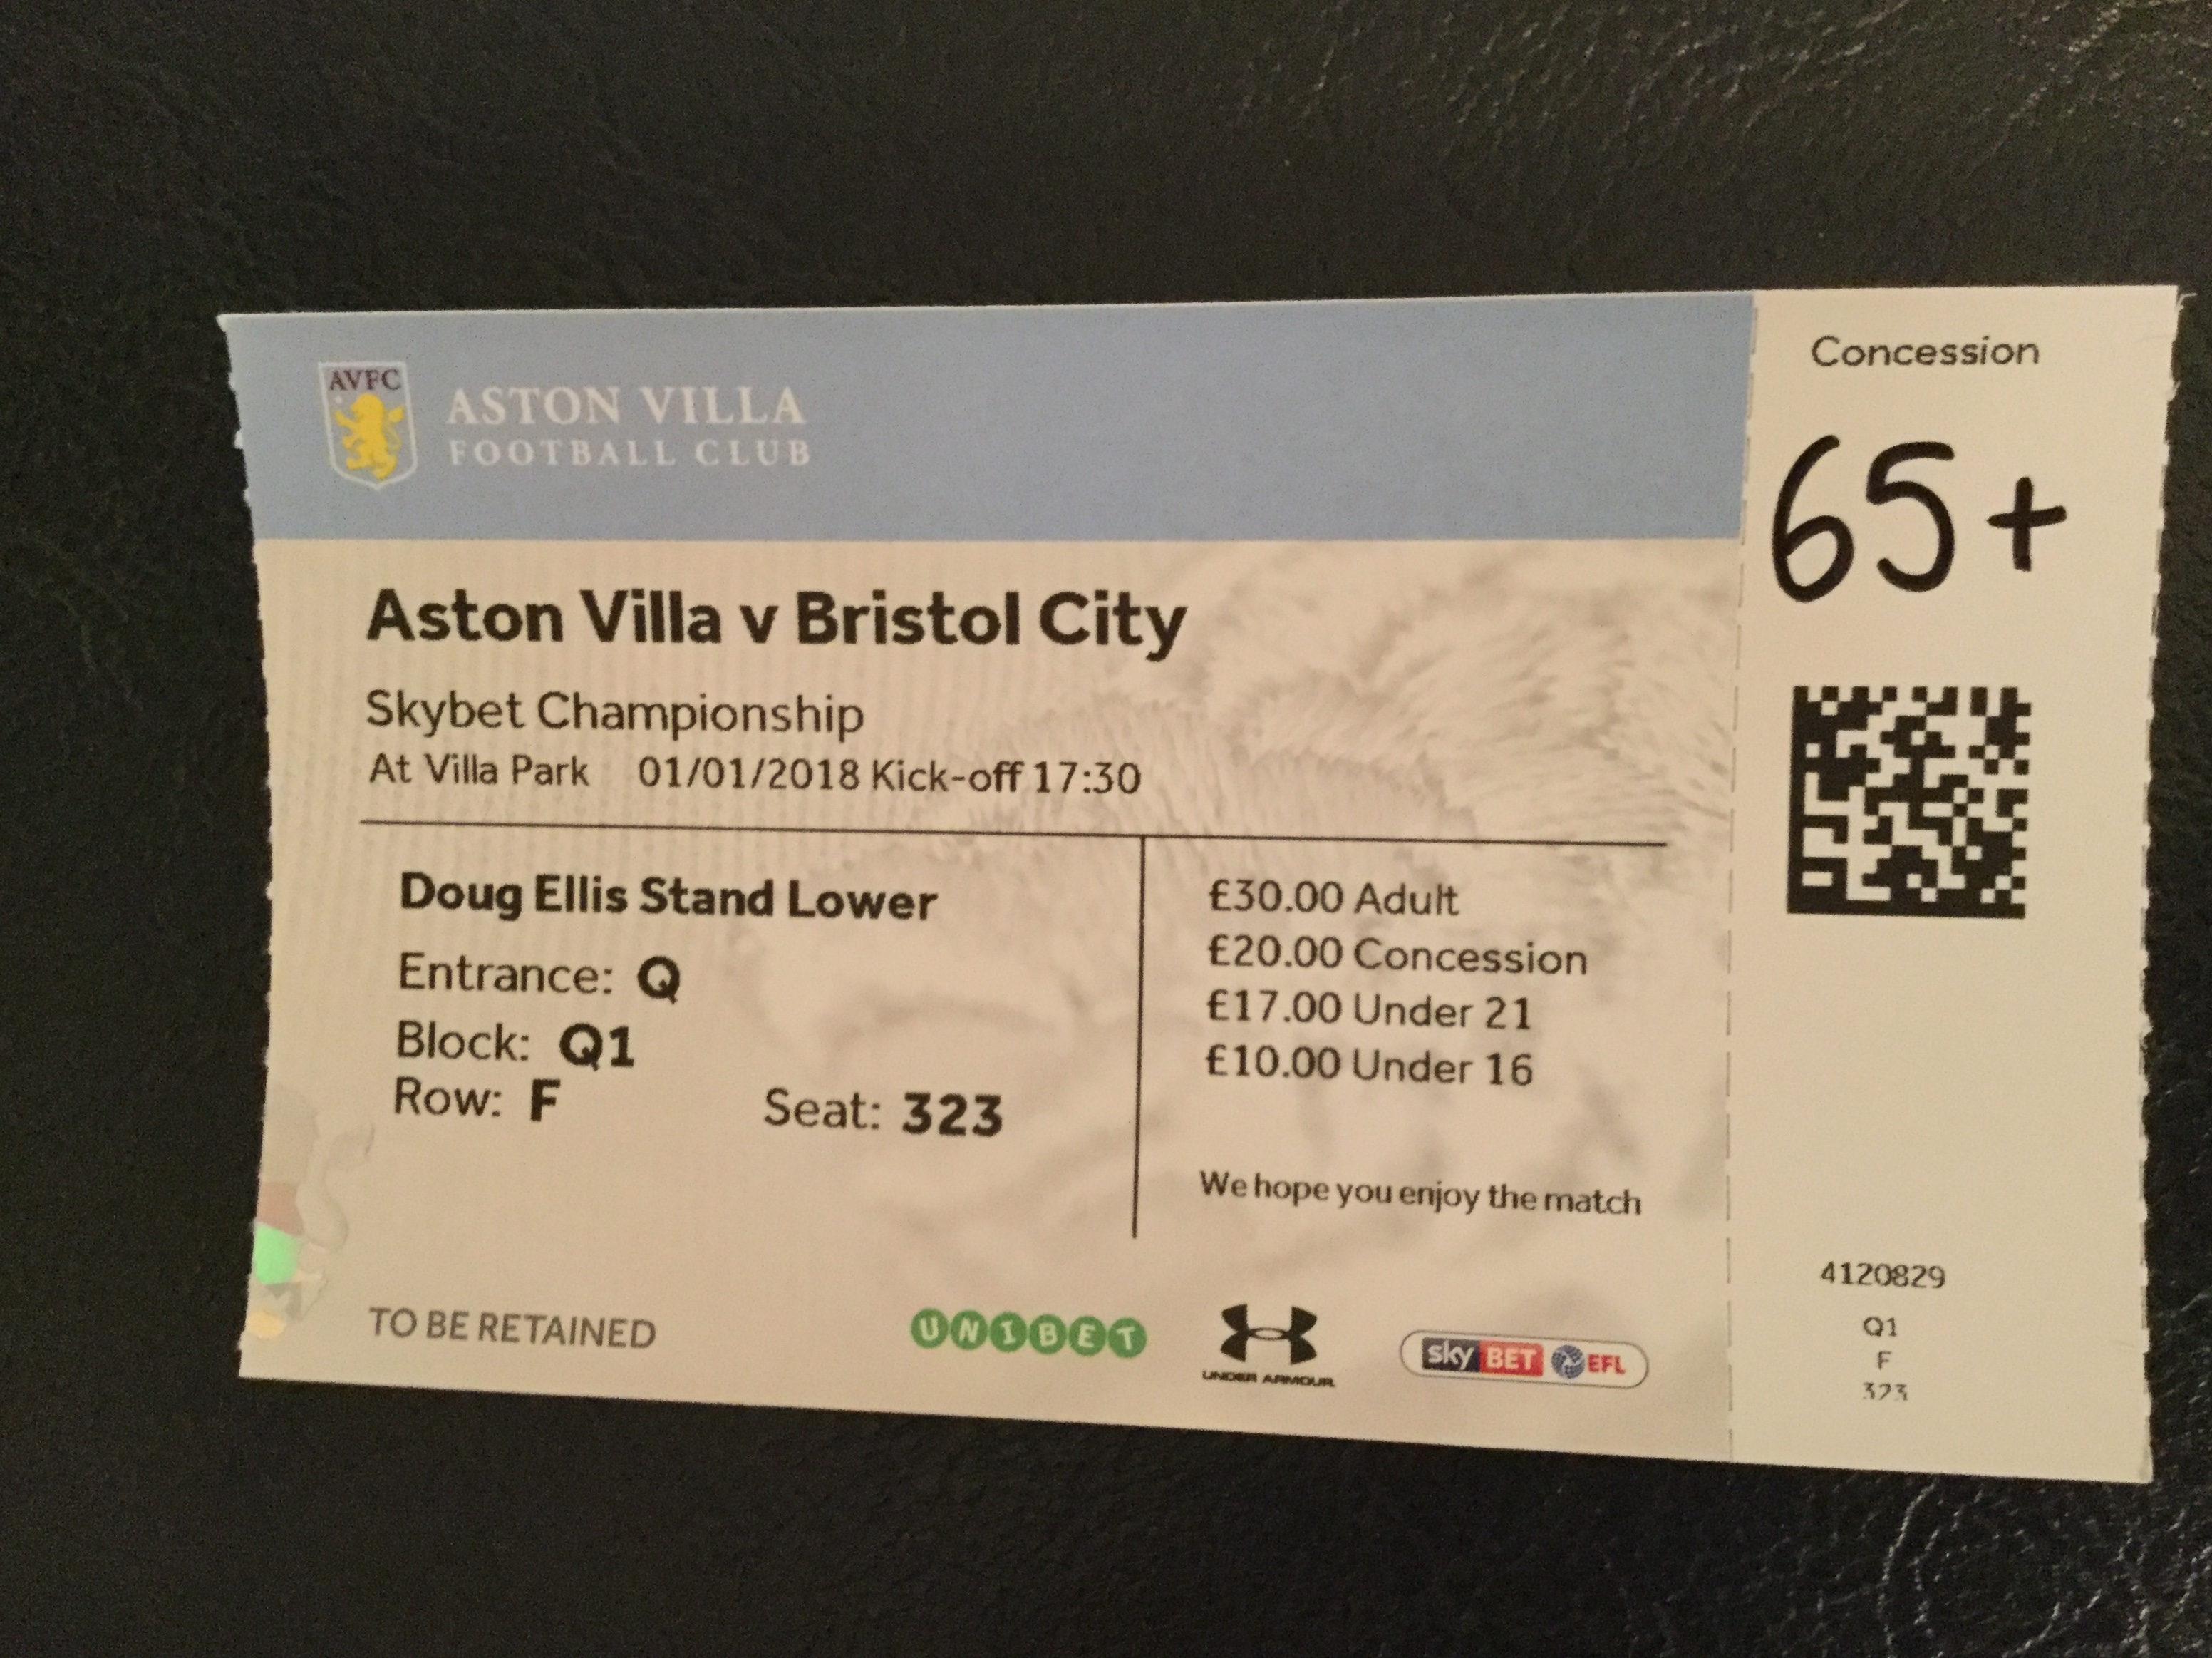 Aston Villa v Bristol City 01-01-18 Ticket